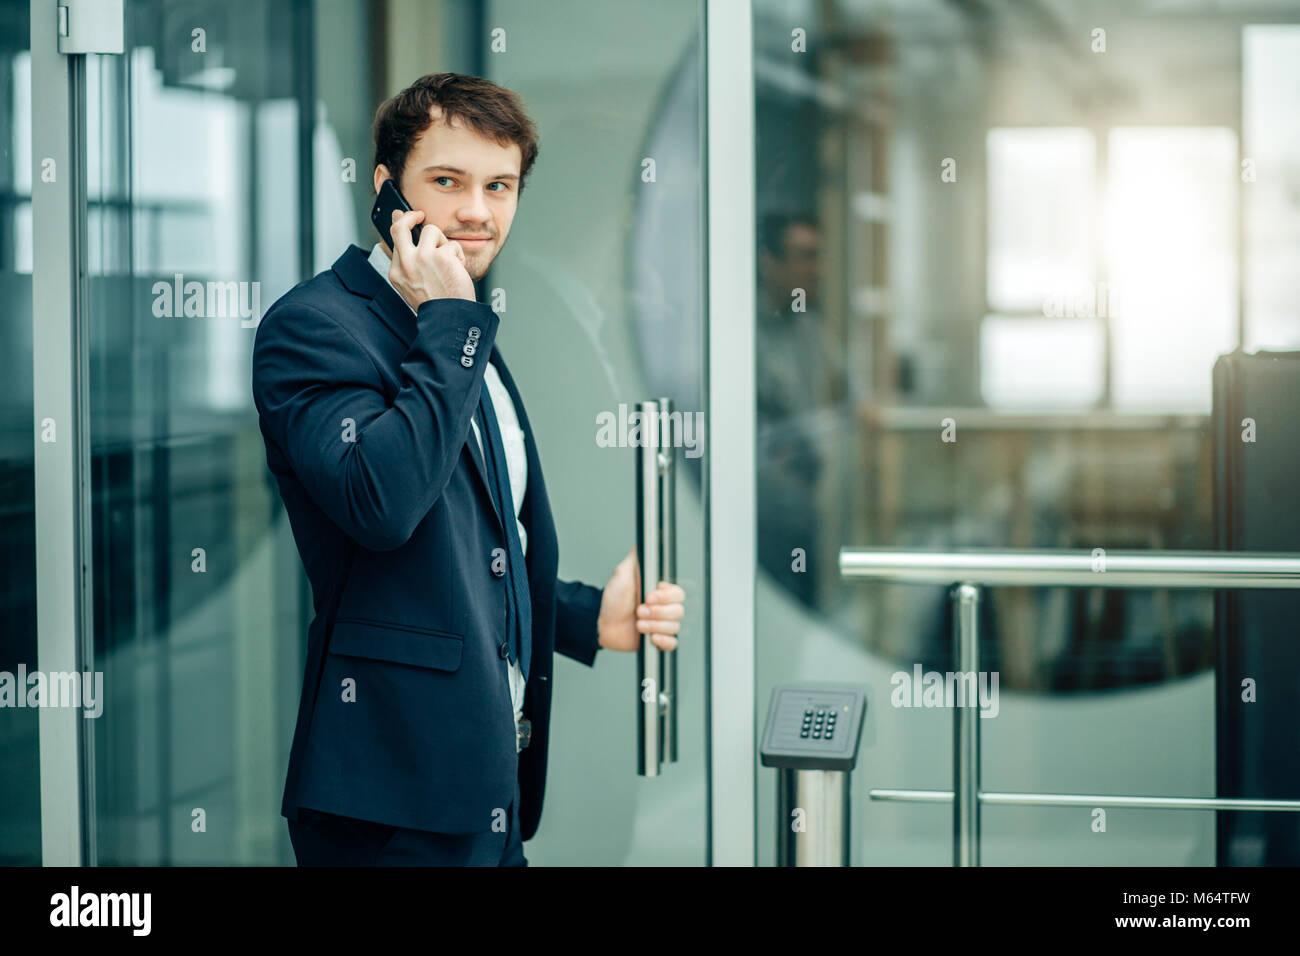 Business man walking while talking on mobile phone sur le chemin du travail Photo Stock